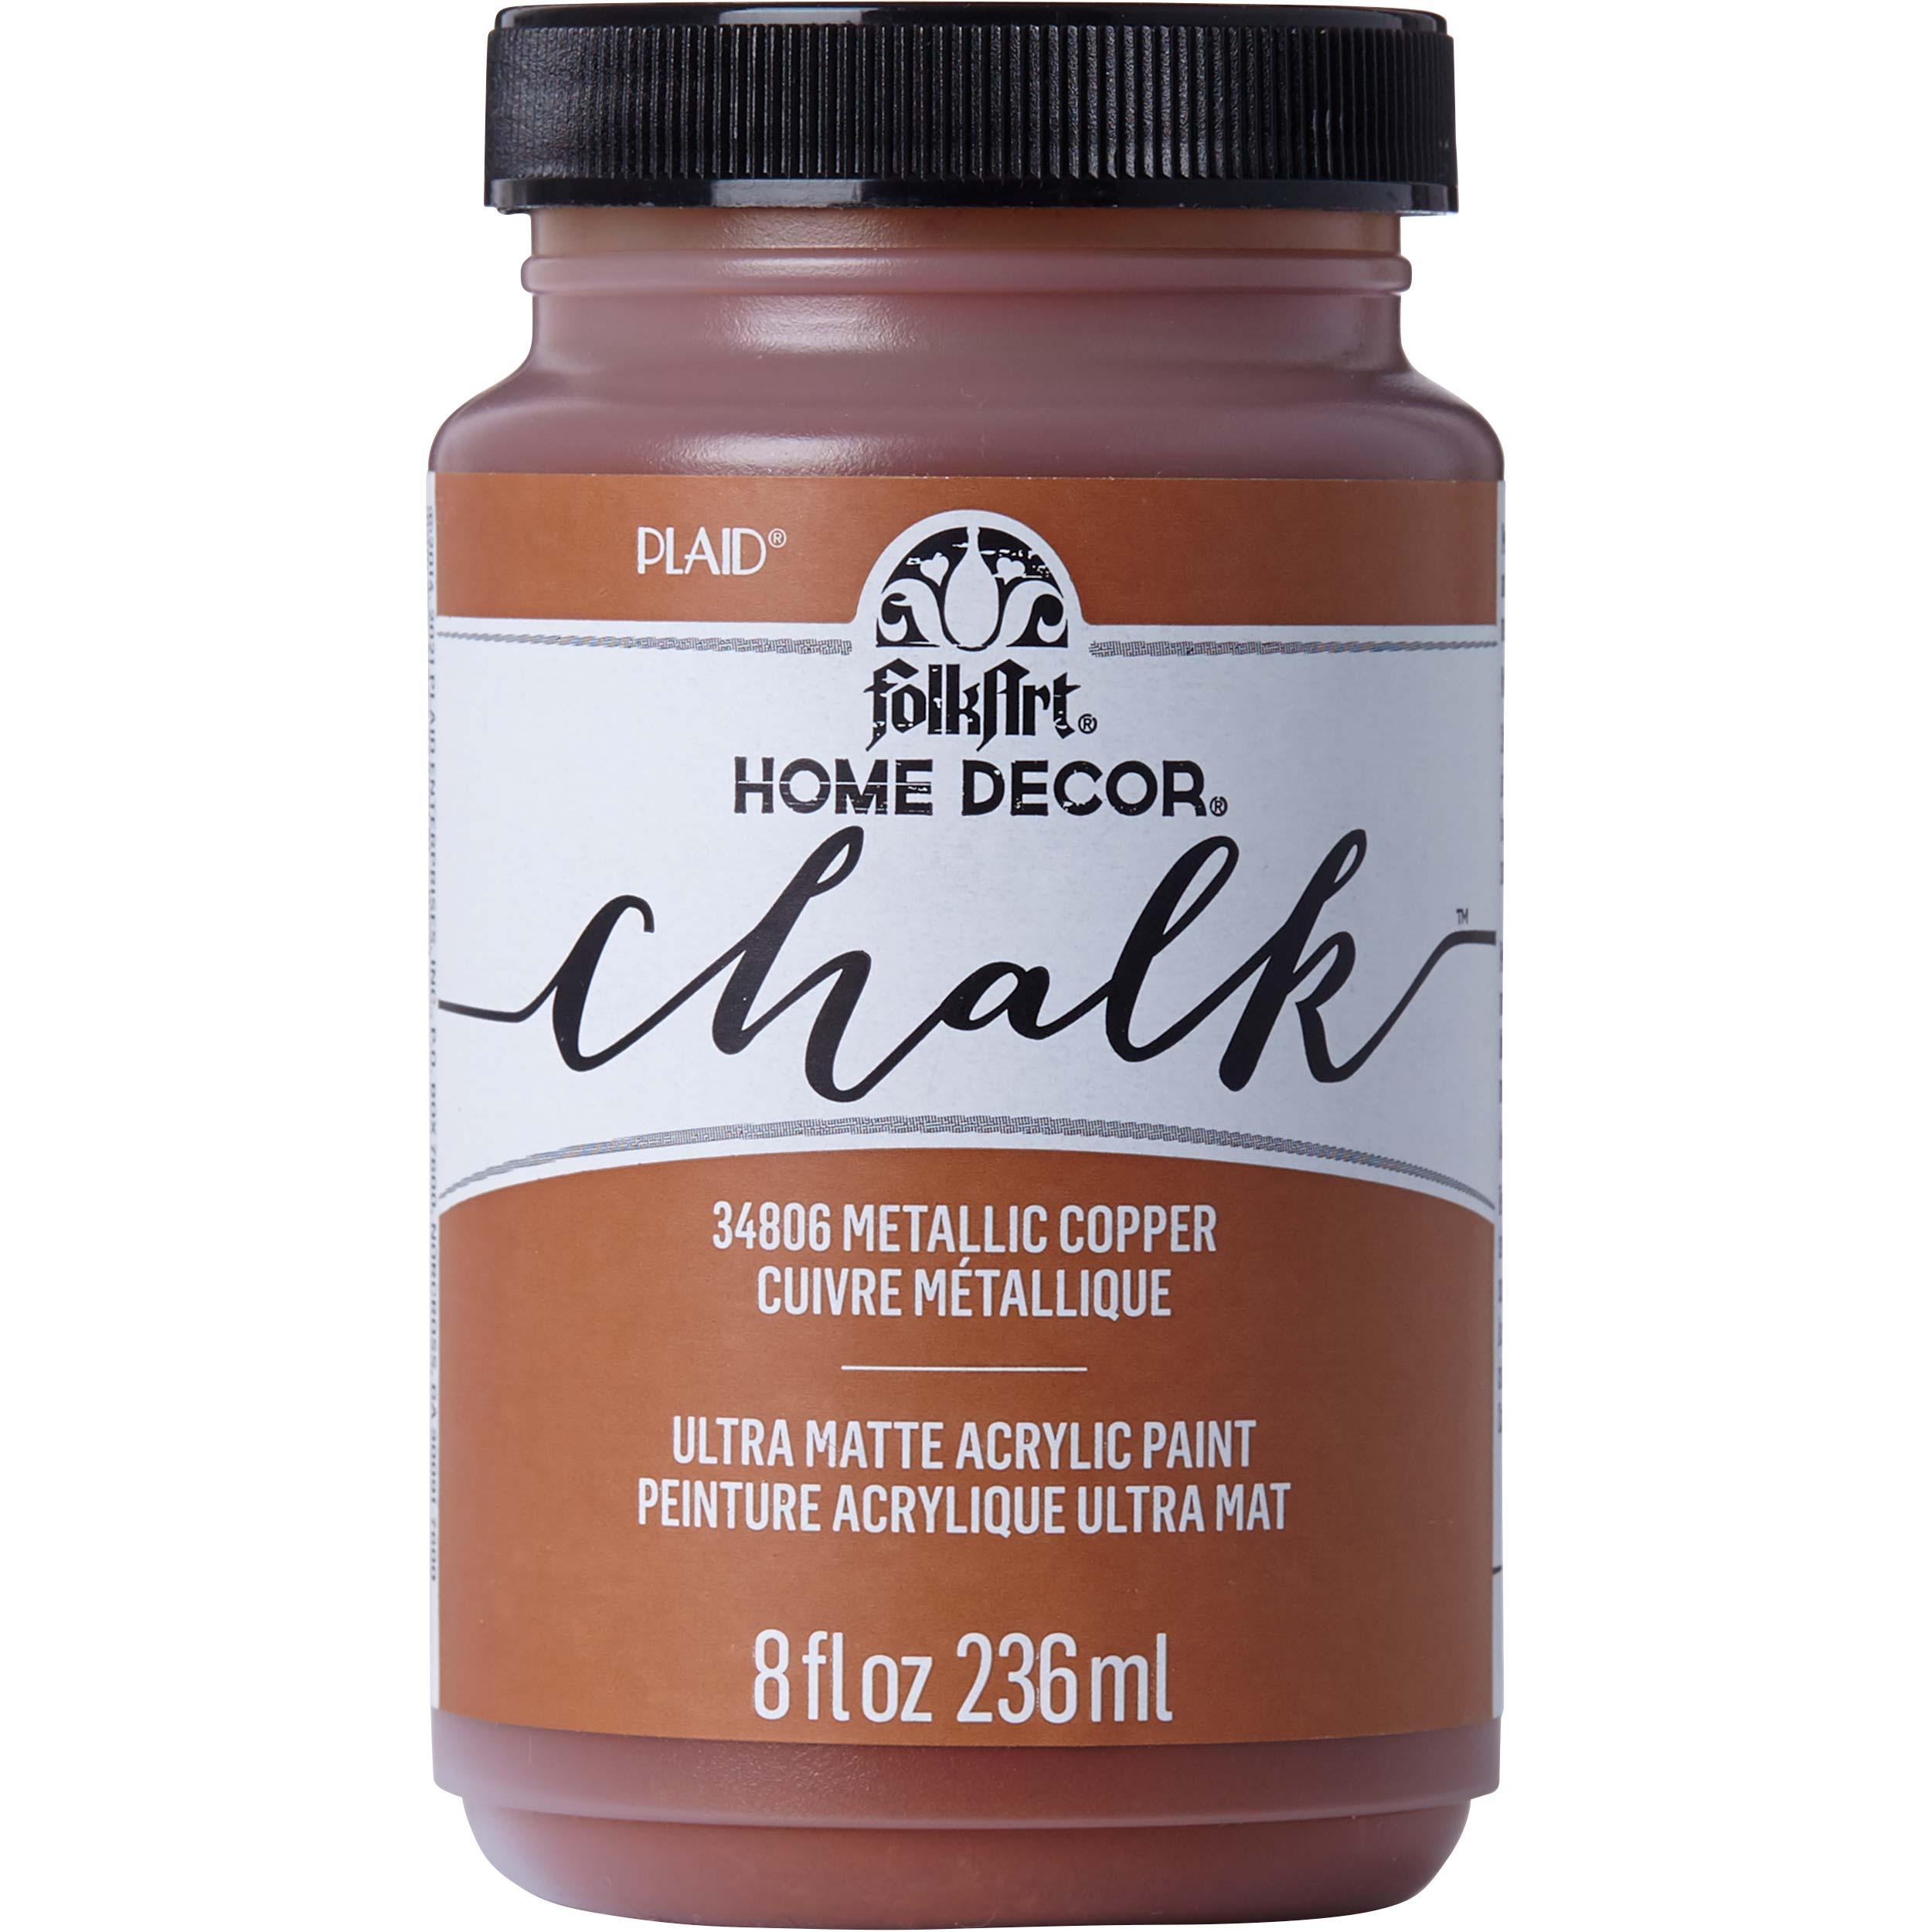 FolkArt ® Home Decor™ Chalk - Metallic Copper, 8 oz. - 34806